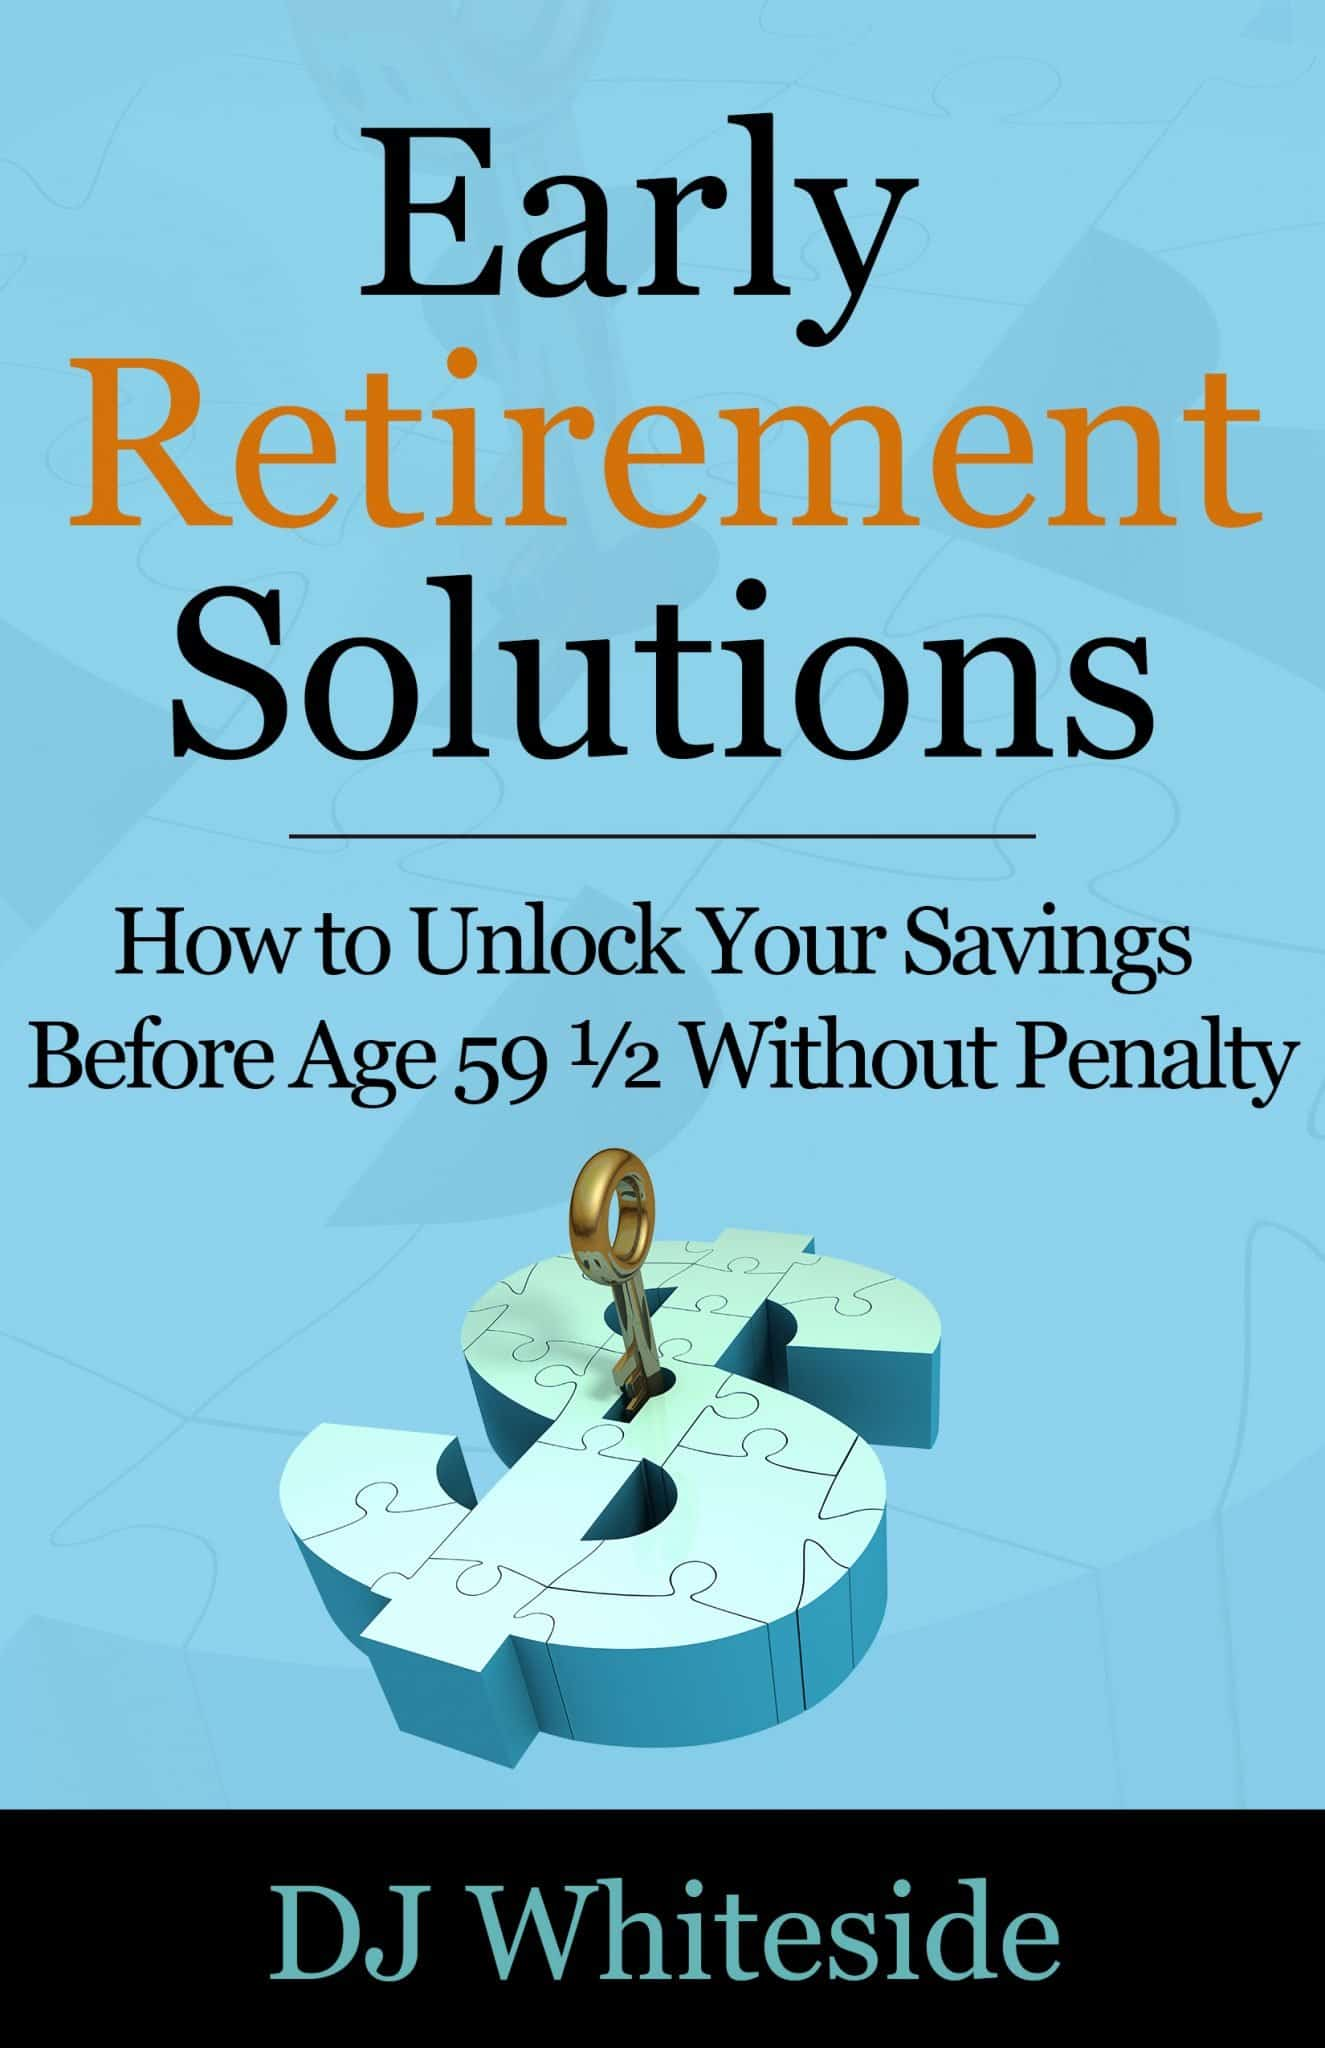 Unlock Your Retirement Savings Before Age 5912 to Retire